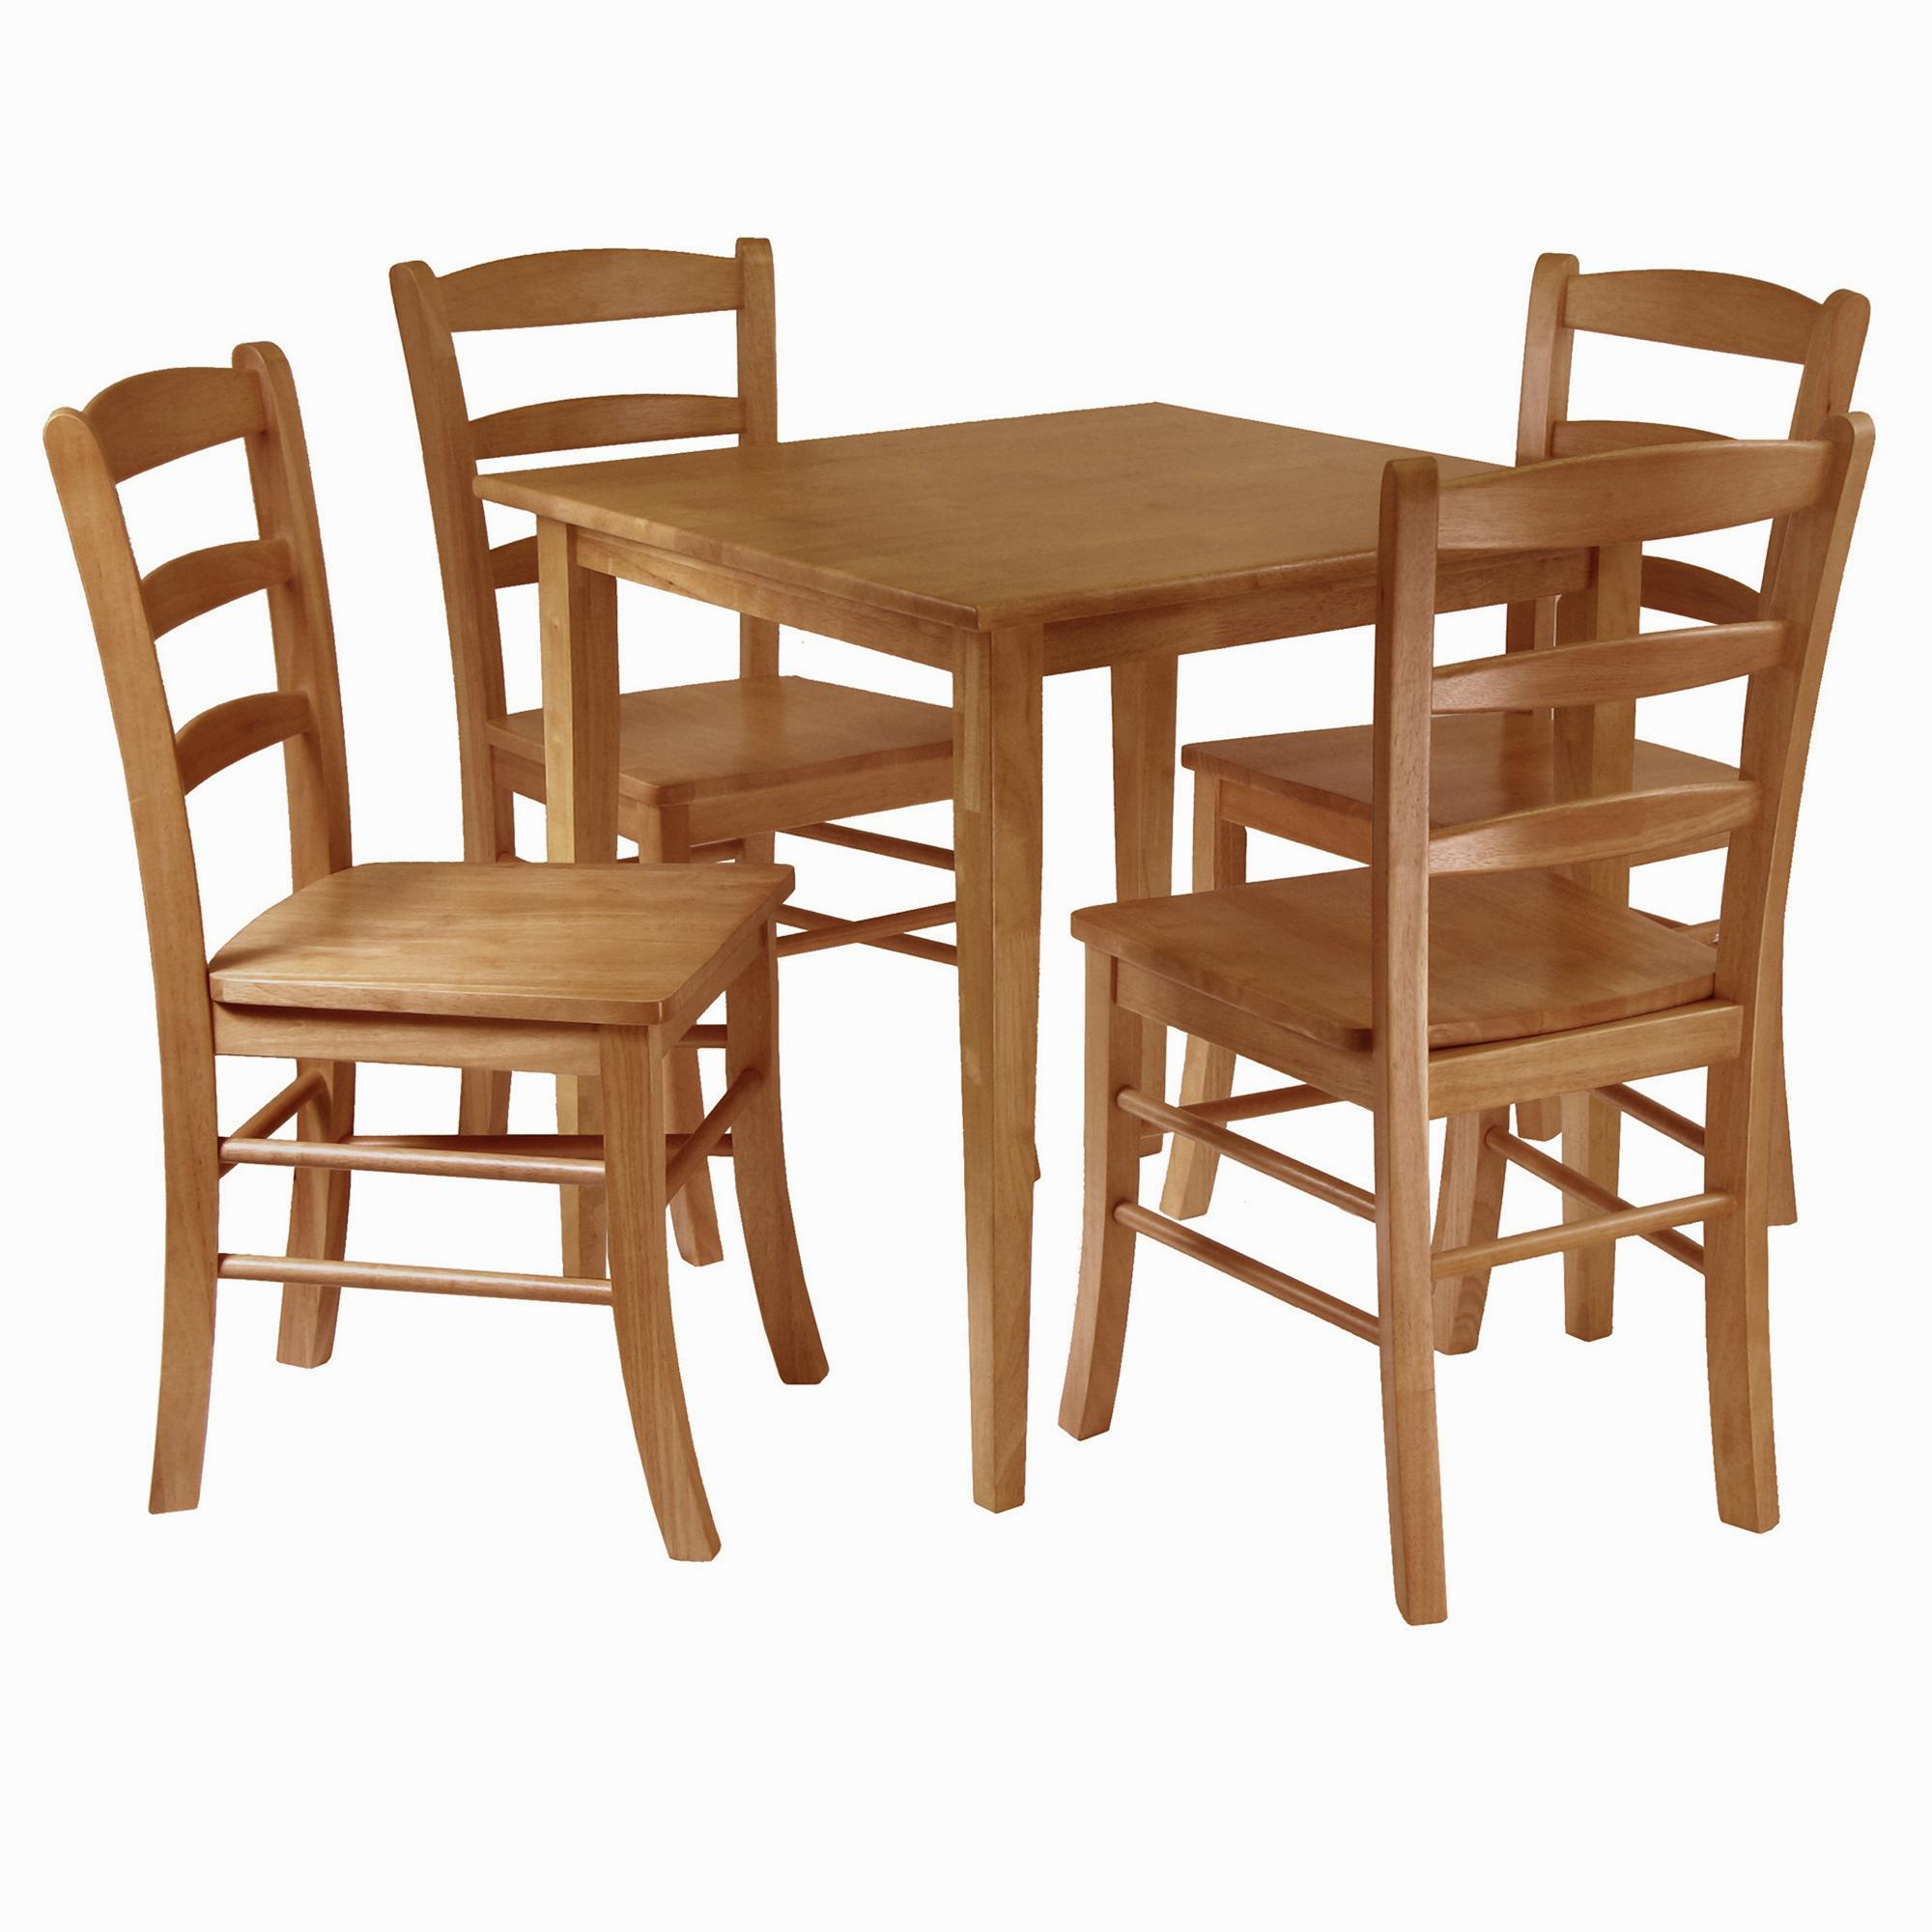 Winsome Groveland 5 Piece Wood Dining Set, Light Oak Finish In Famous Sundberg 5 Piece Solid Wood Dining Sets (View 10 of 20)